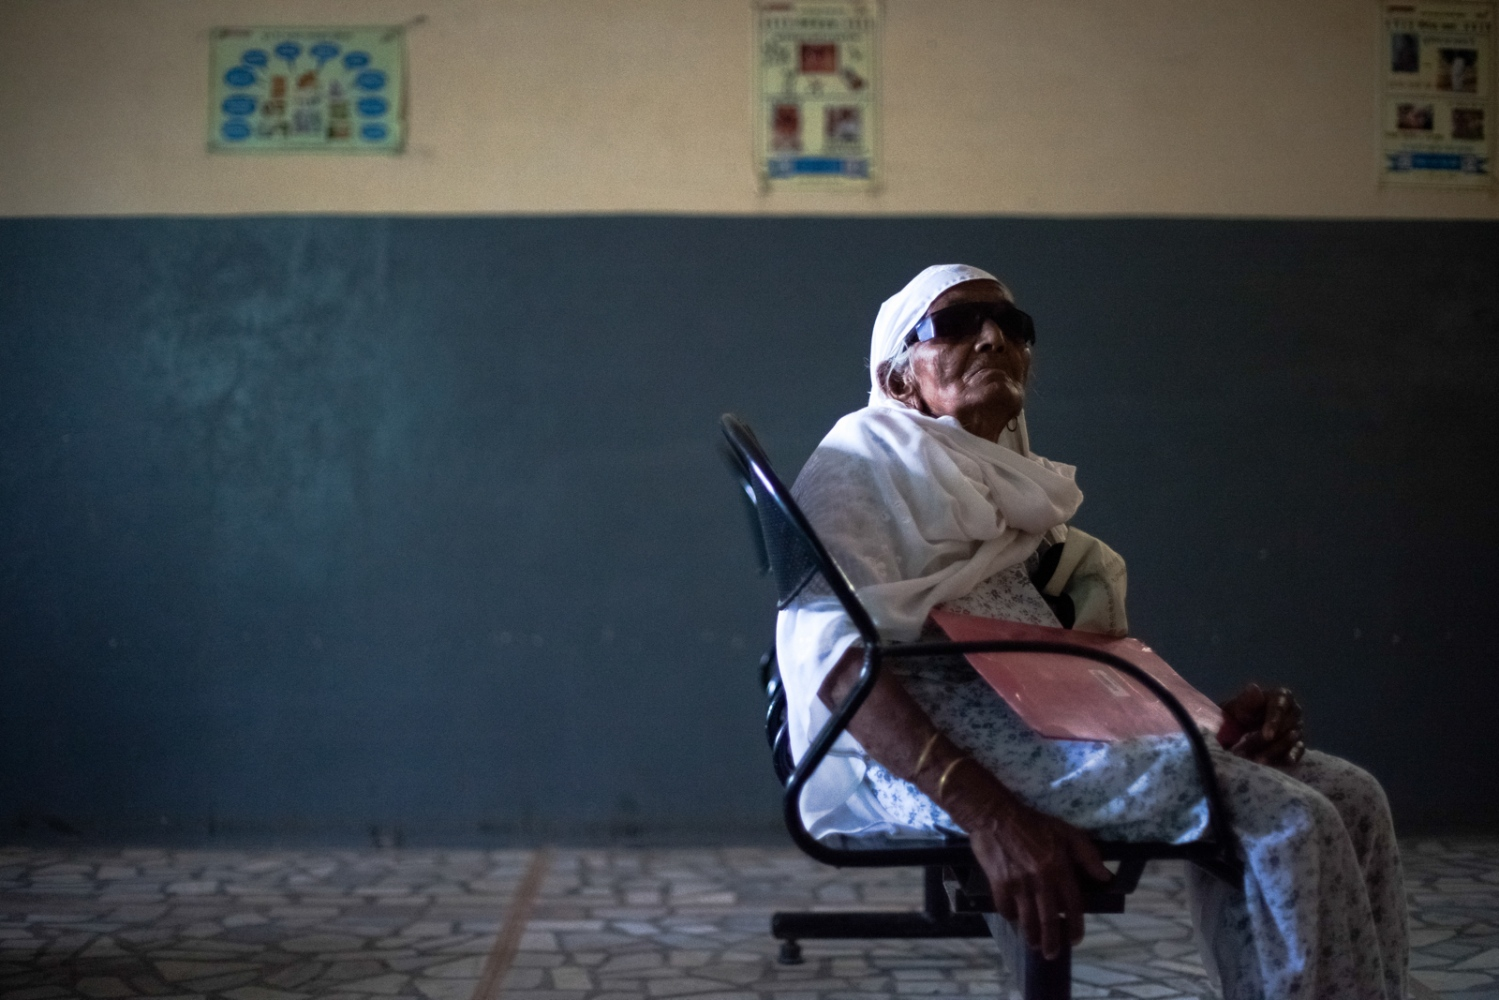 An Indian patient waits to undergo an eye examination at the Dr Shroff Charity Eye Hospital in Alwar in the state of Rajasthan on August 28, 2014.